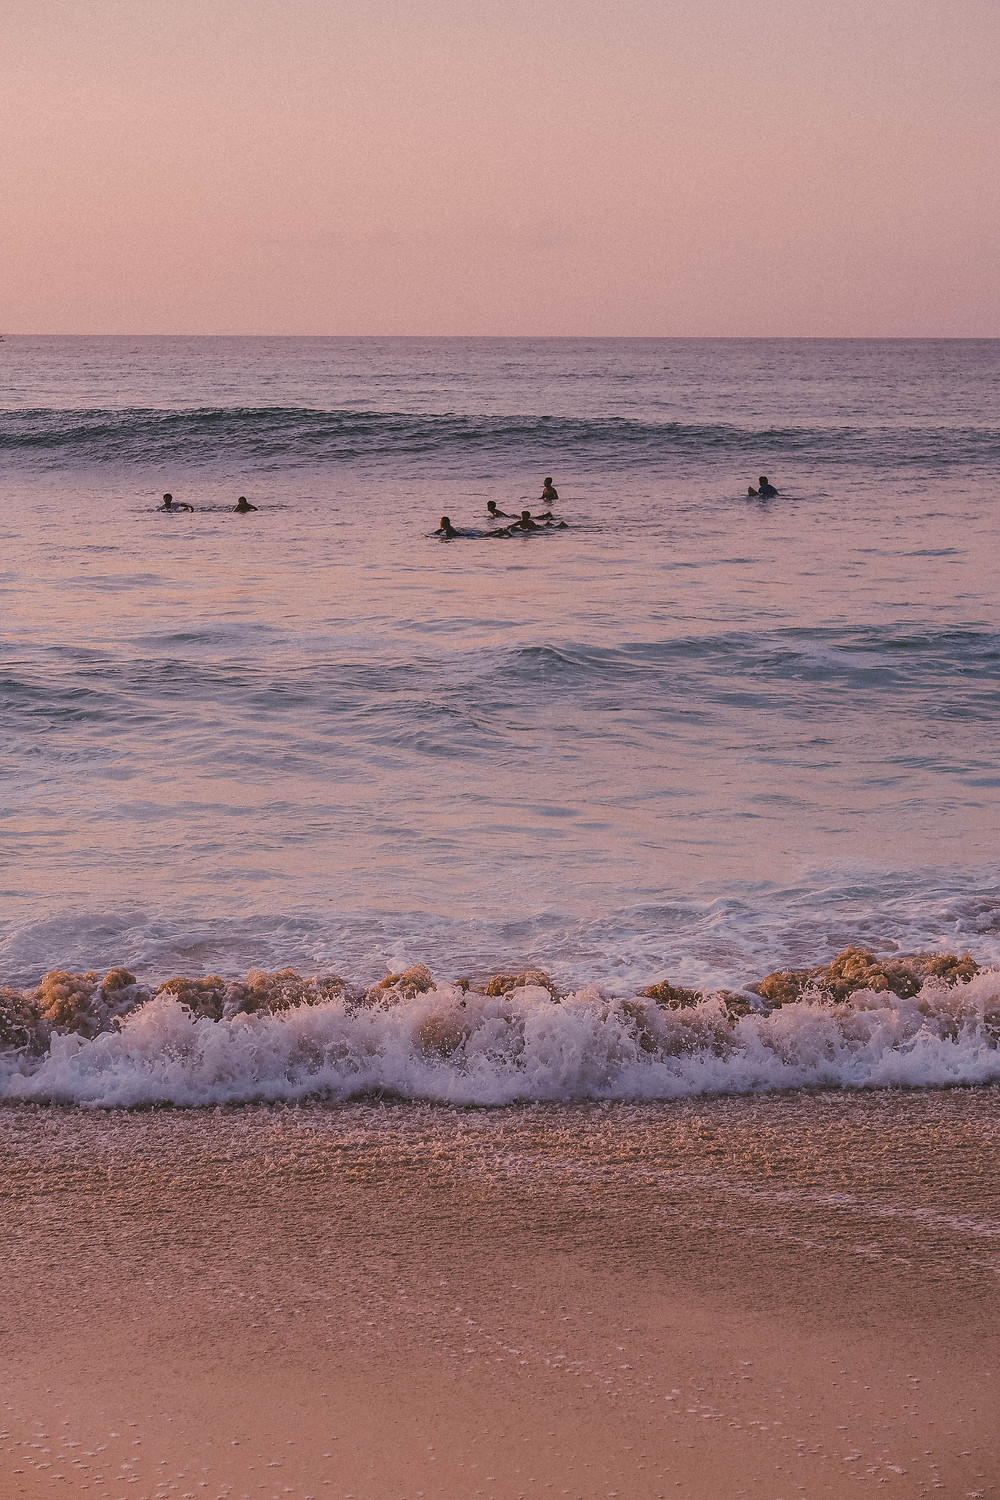 Surfers at Dreamland Beach